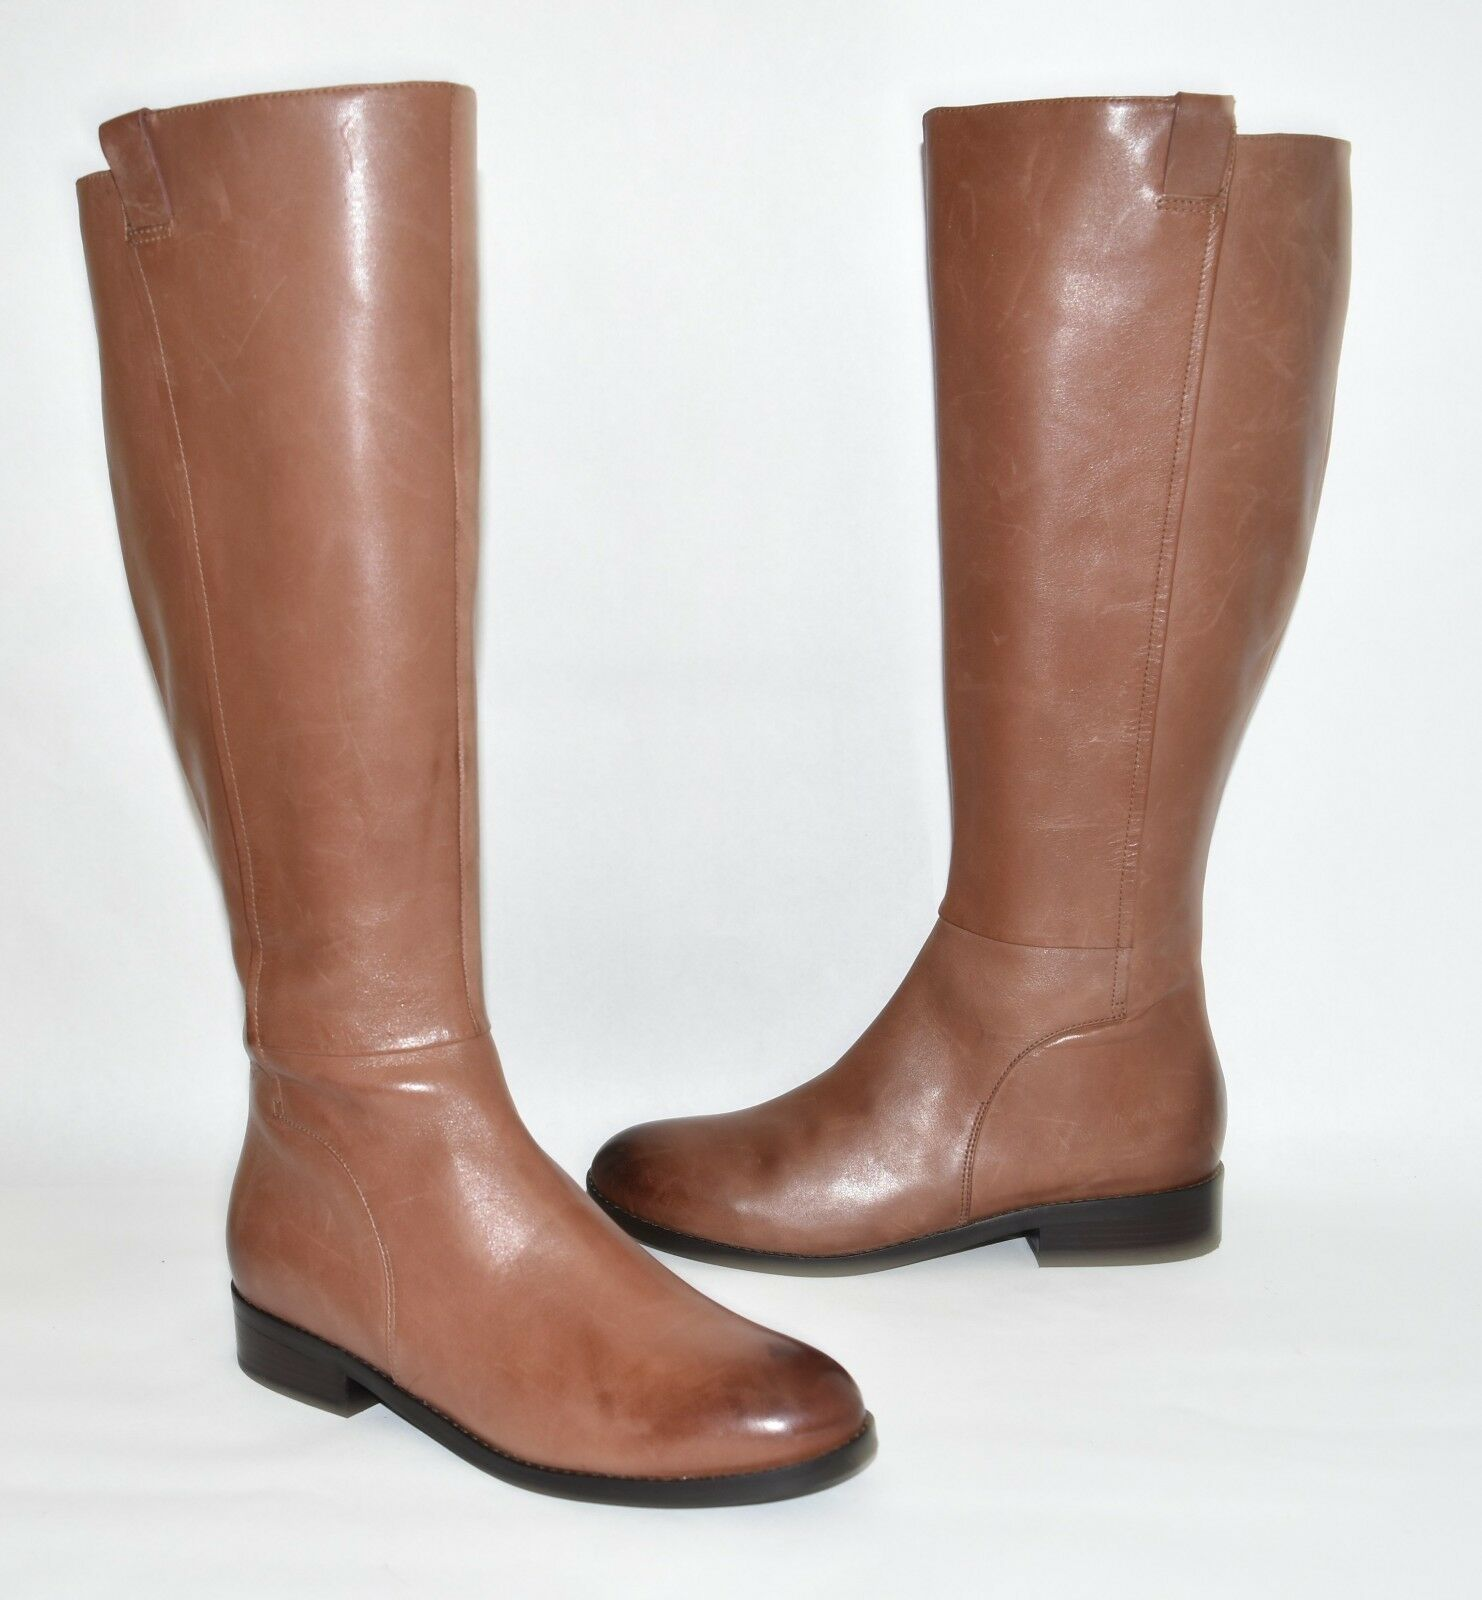 New New New  Cole Haan Katrina Riding Boot Brown Leather Size 9 B w08604 52ae51